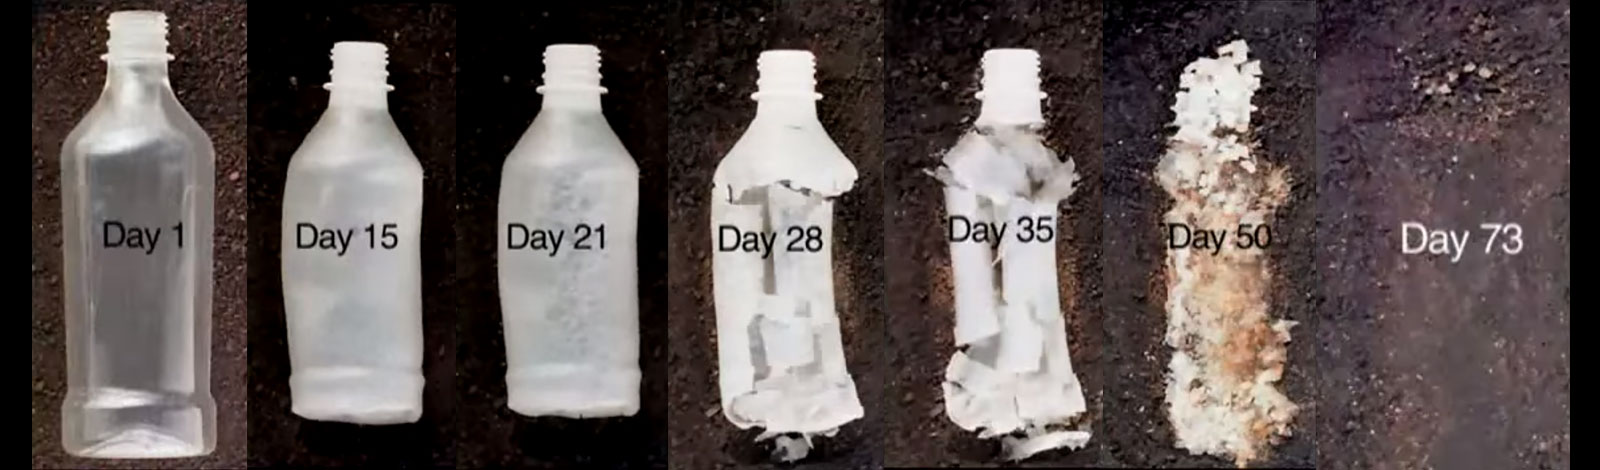 Plastic bottle made from biodegradable plastic disappearing back into the Earth